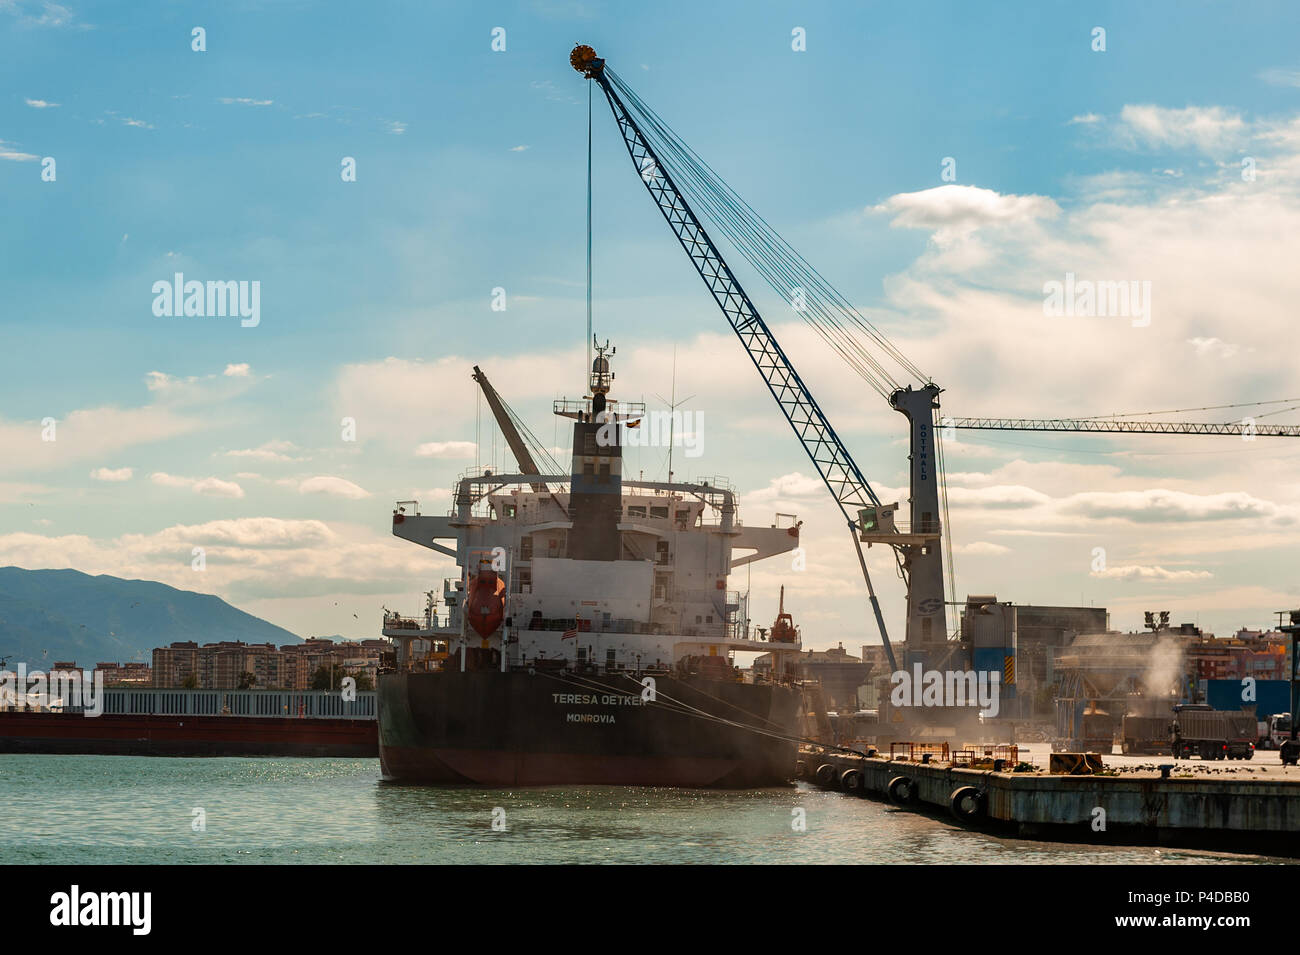 Bulk Carrier Teresa Oetker is loaded at Malaga Port, Malaga Spain. - Stock Image